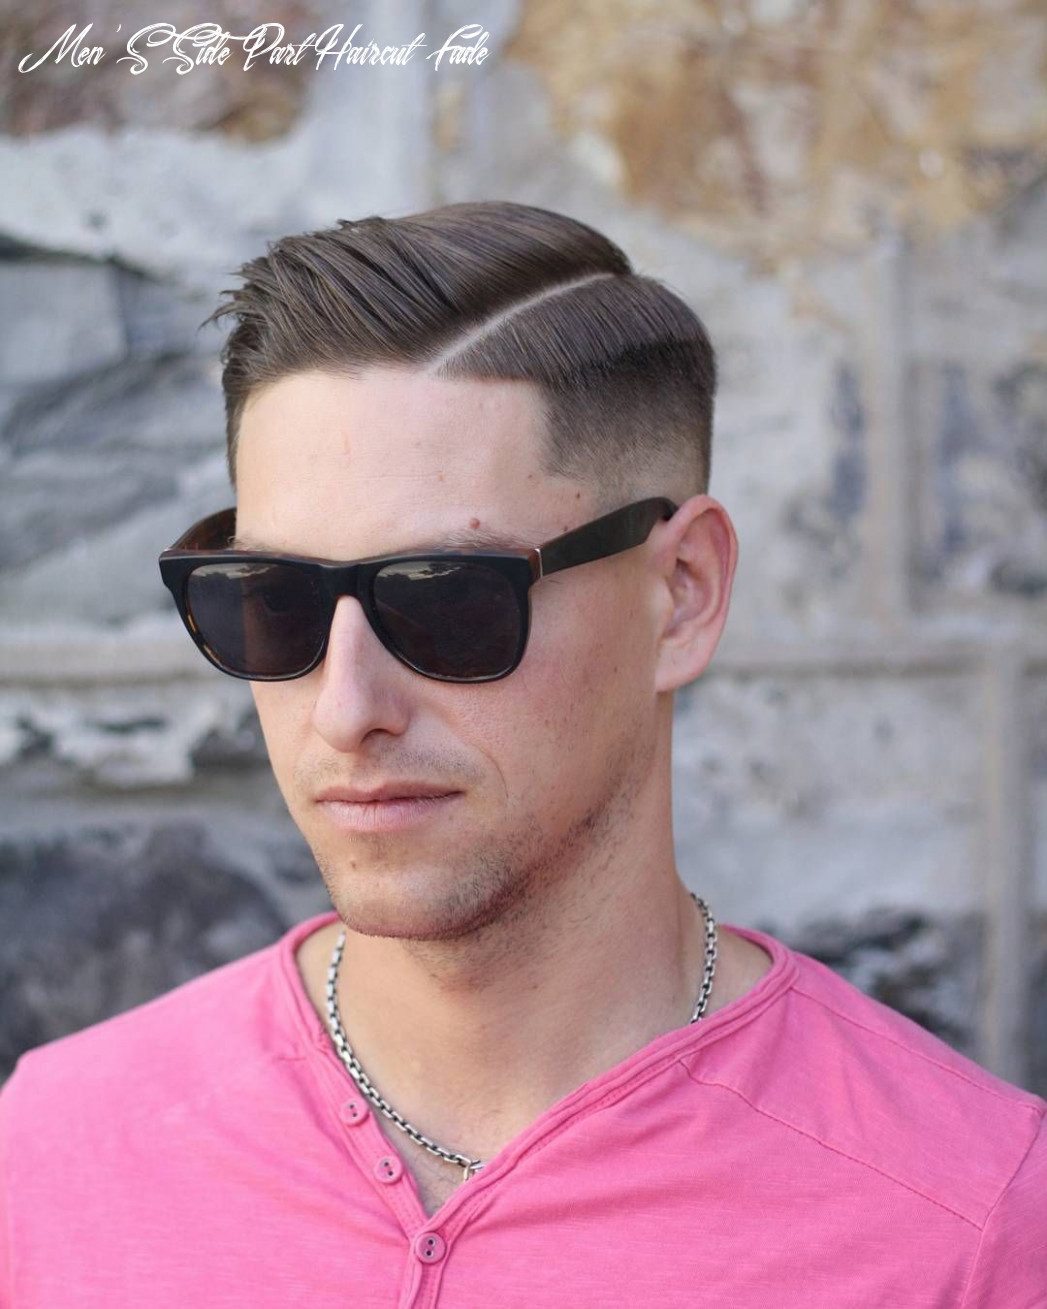 11 new fade haircuts for men (11 update) | cool hairstyles for